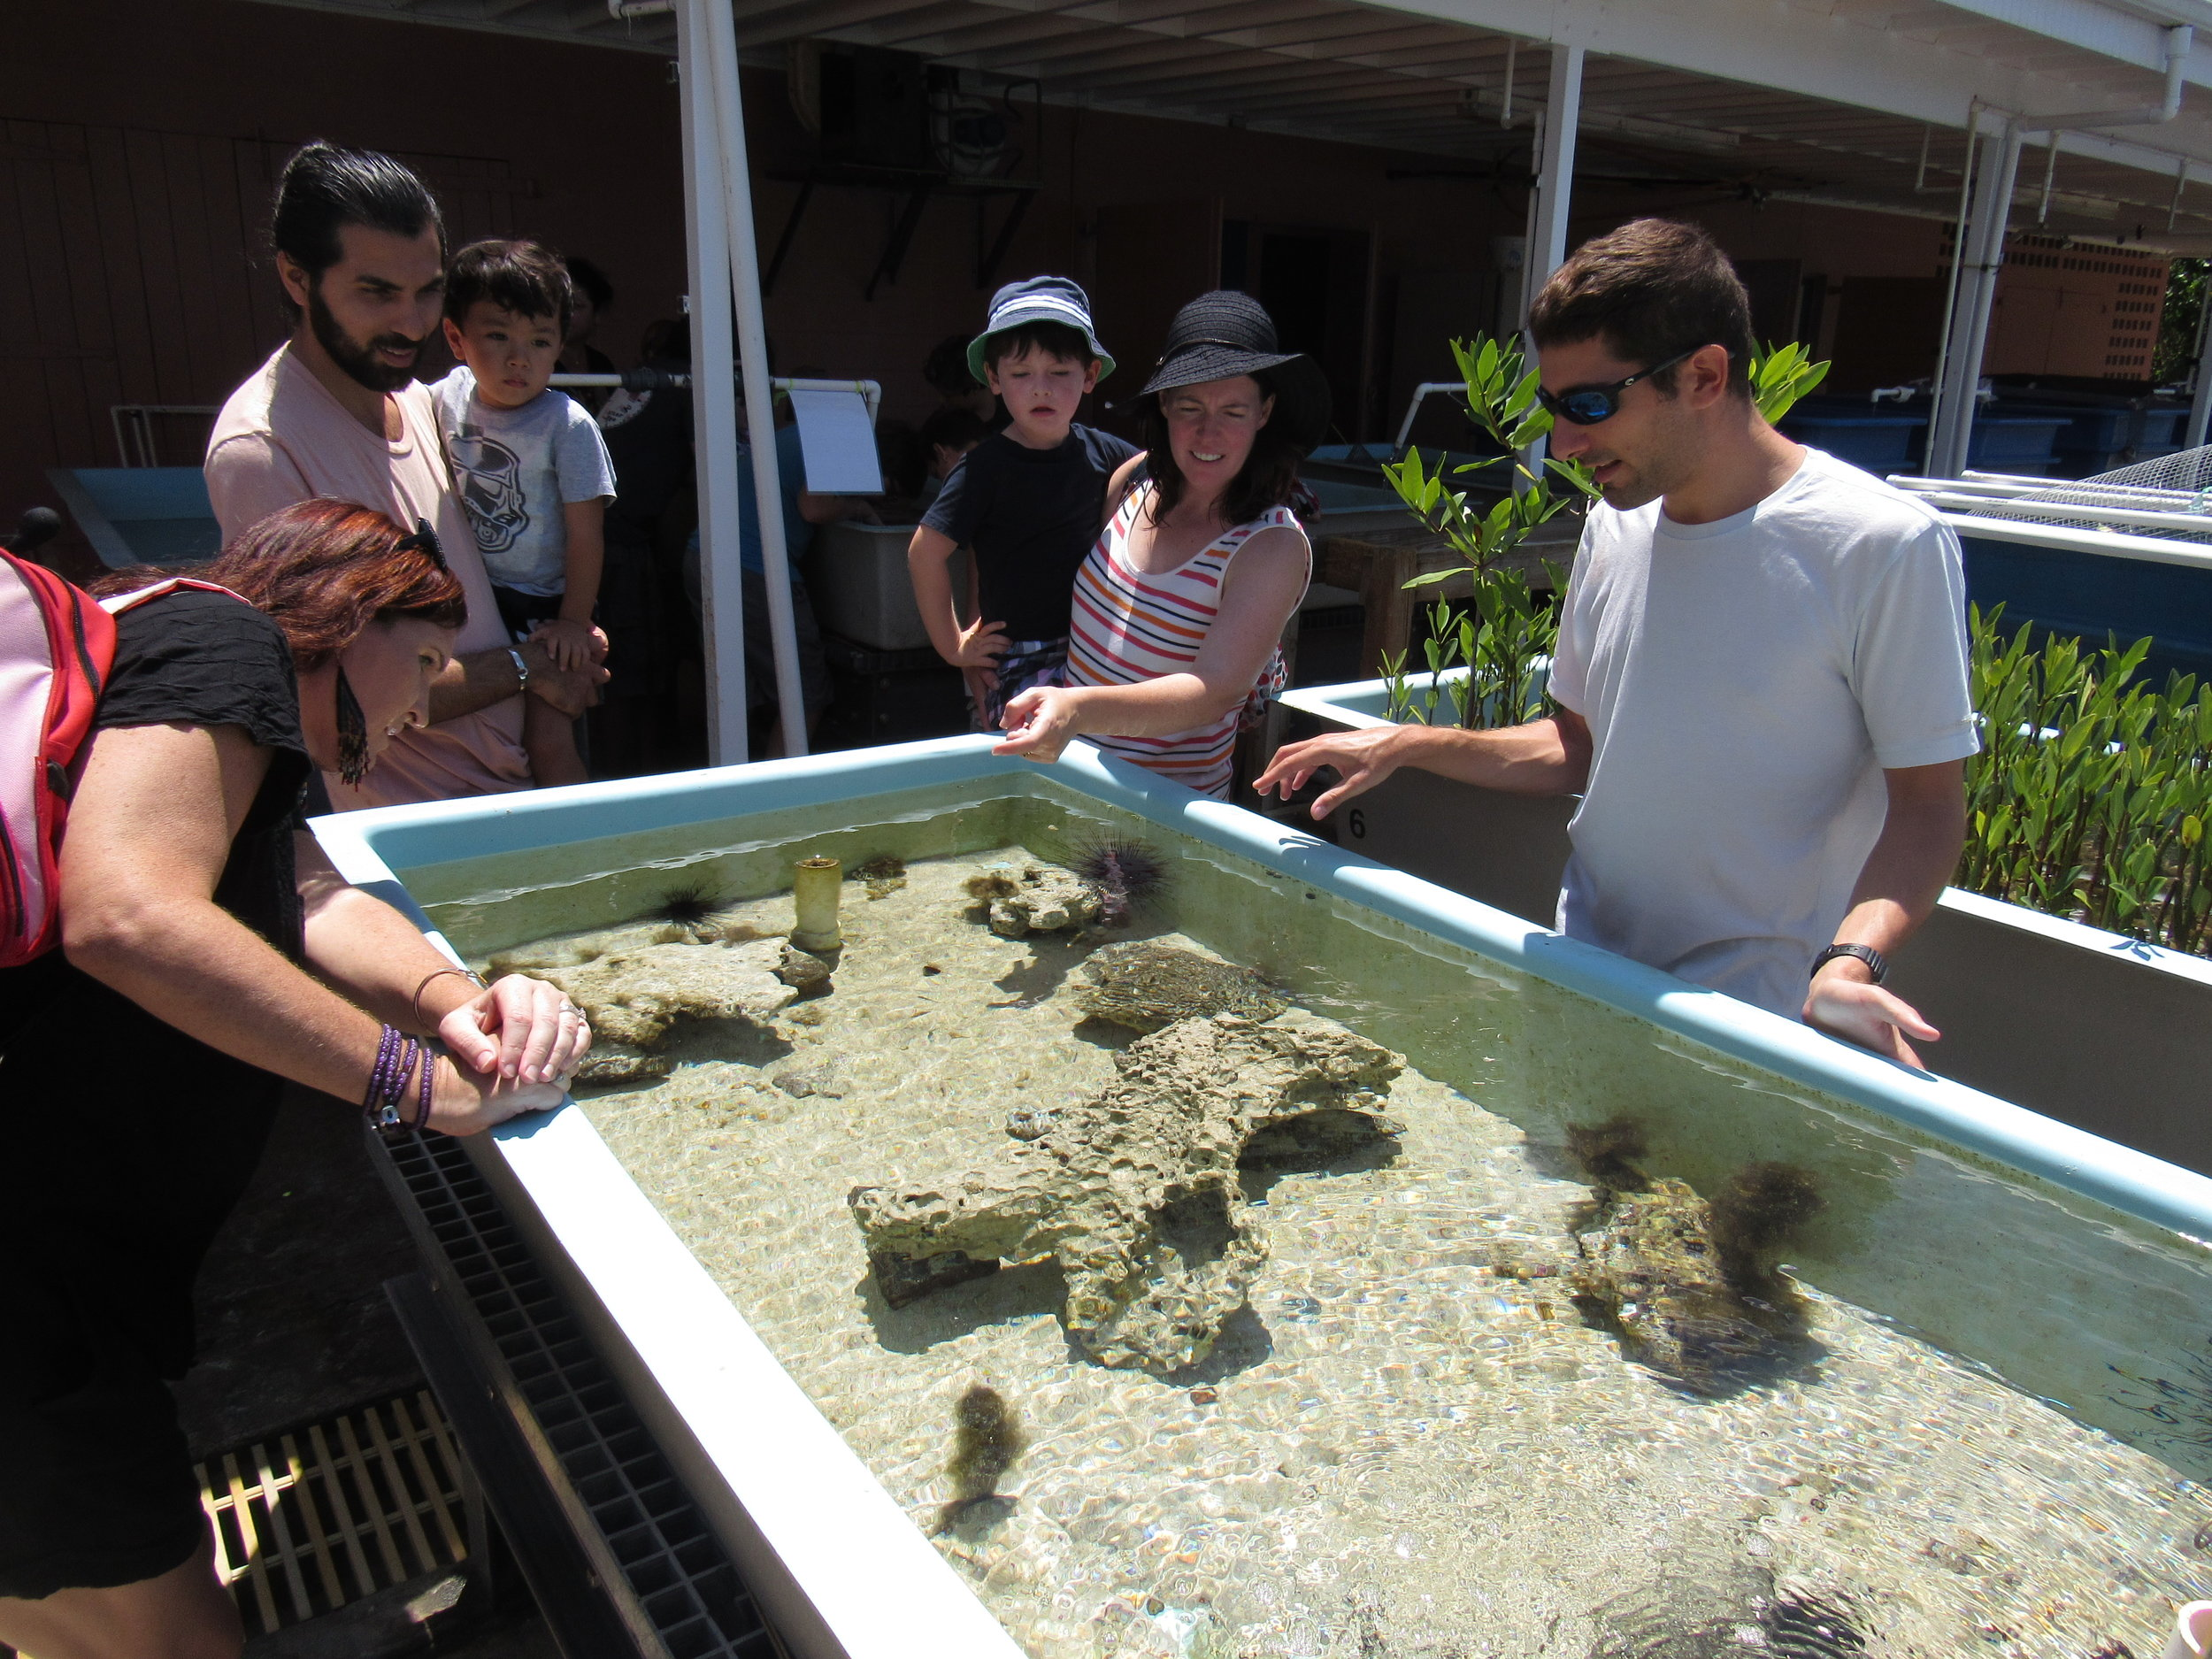 MMES Candidate John Cassell discusses marine life at the touch tank.